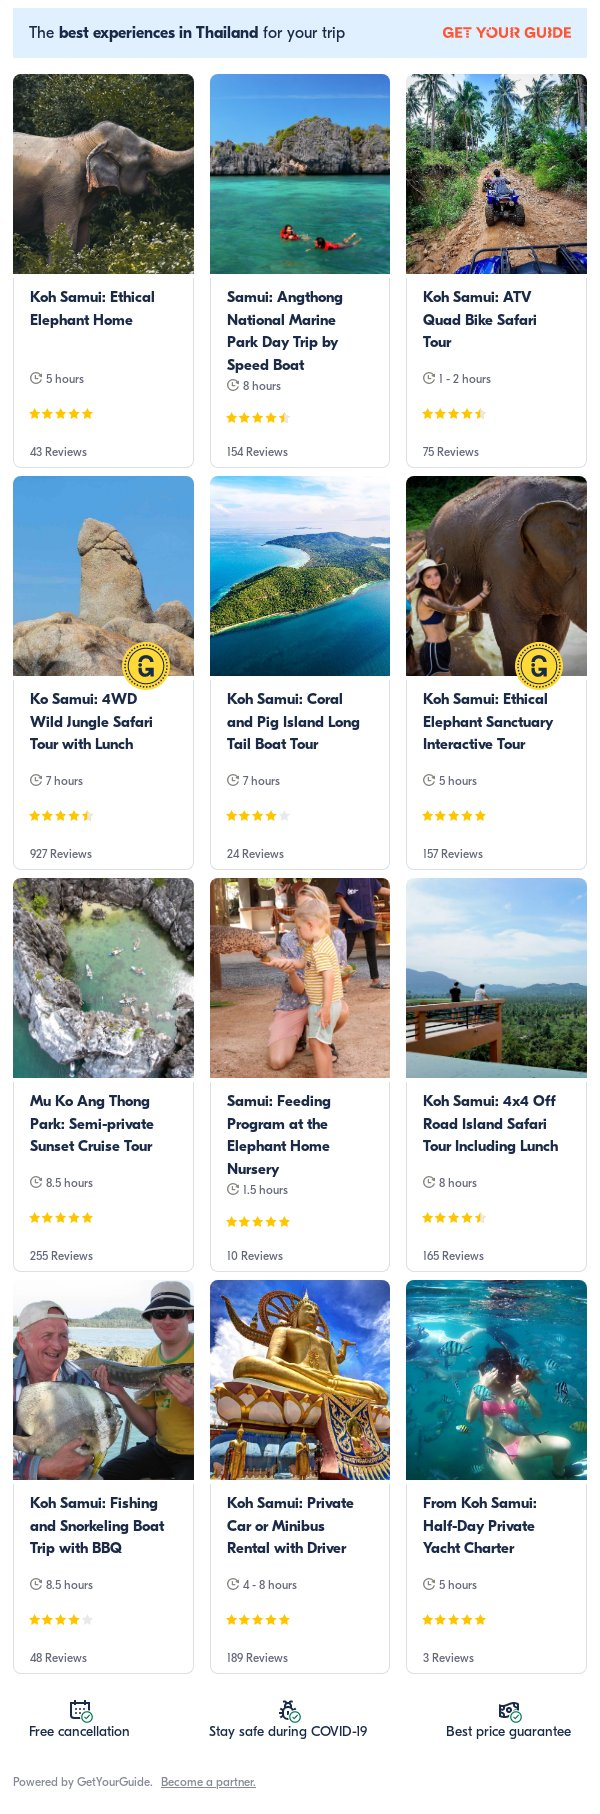 koh samui: Get Your Guide